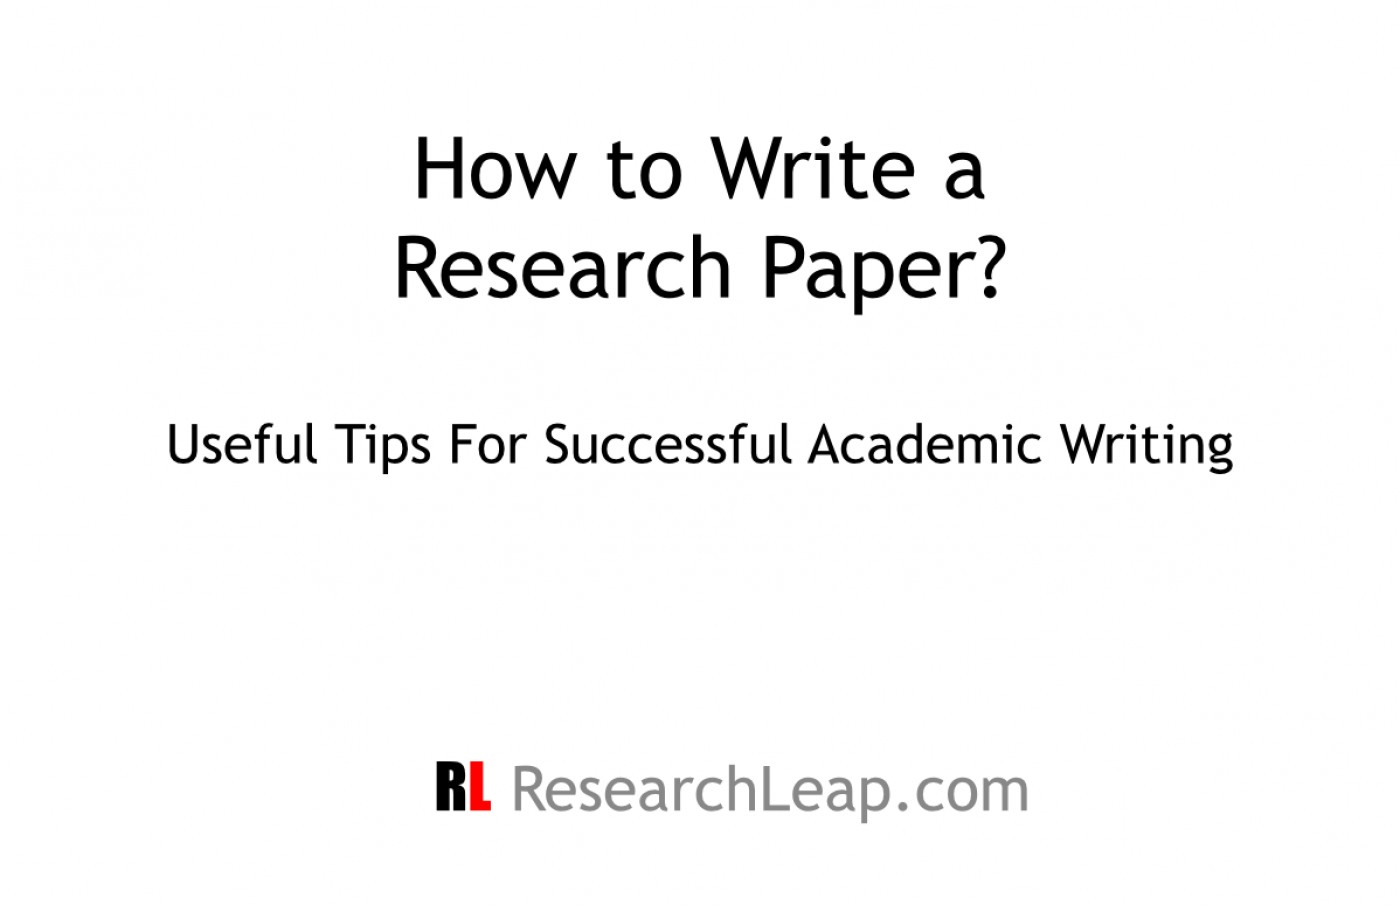 015 Tips For Writing Researchs Ppt Entering Unforgettable Research Papers A History Paper Fast Quickly 1400